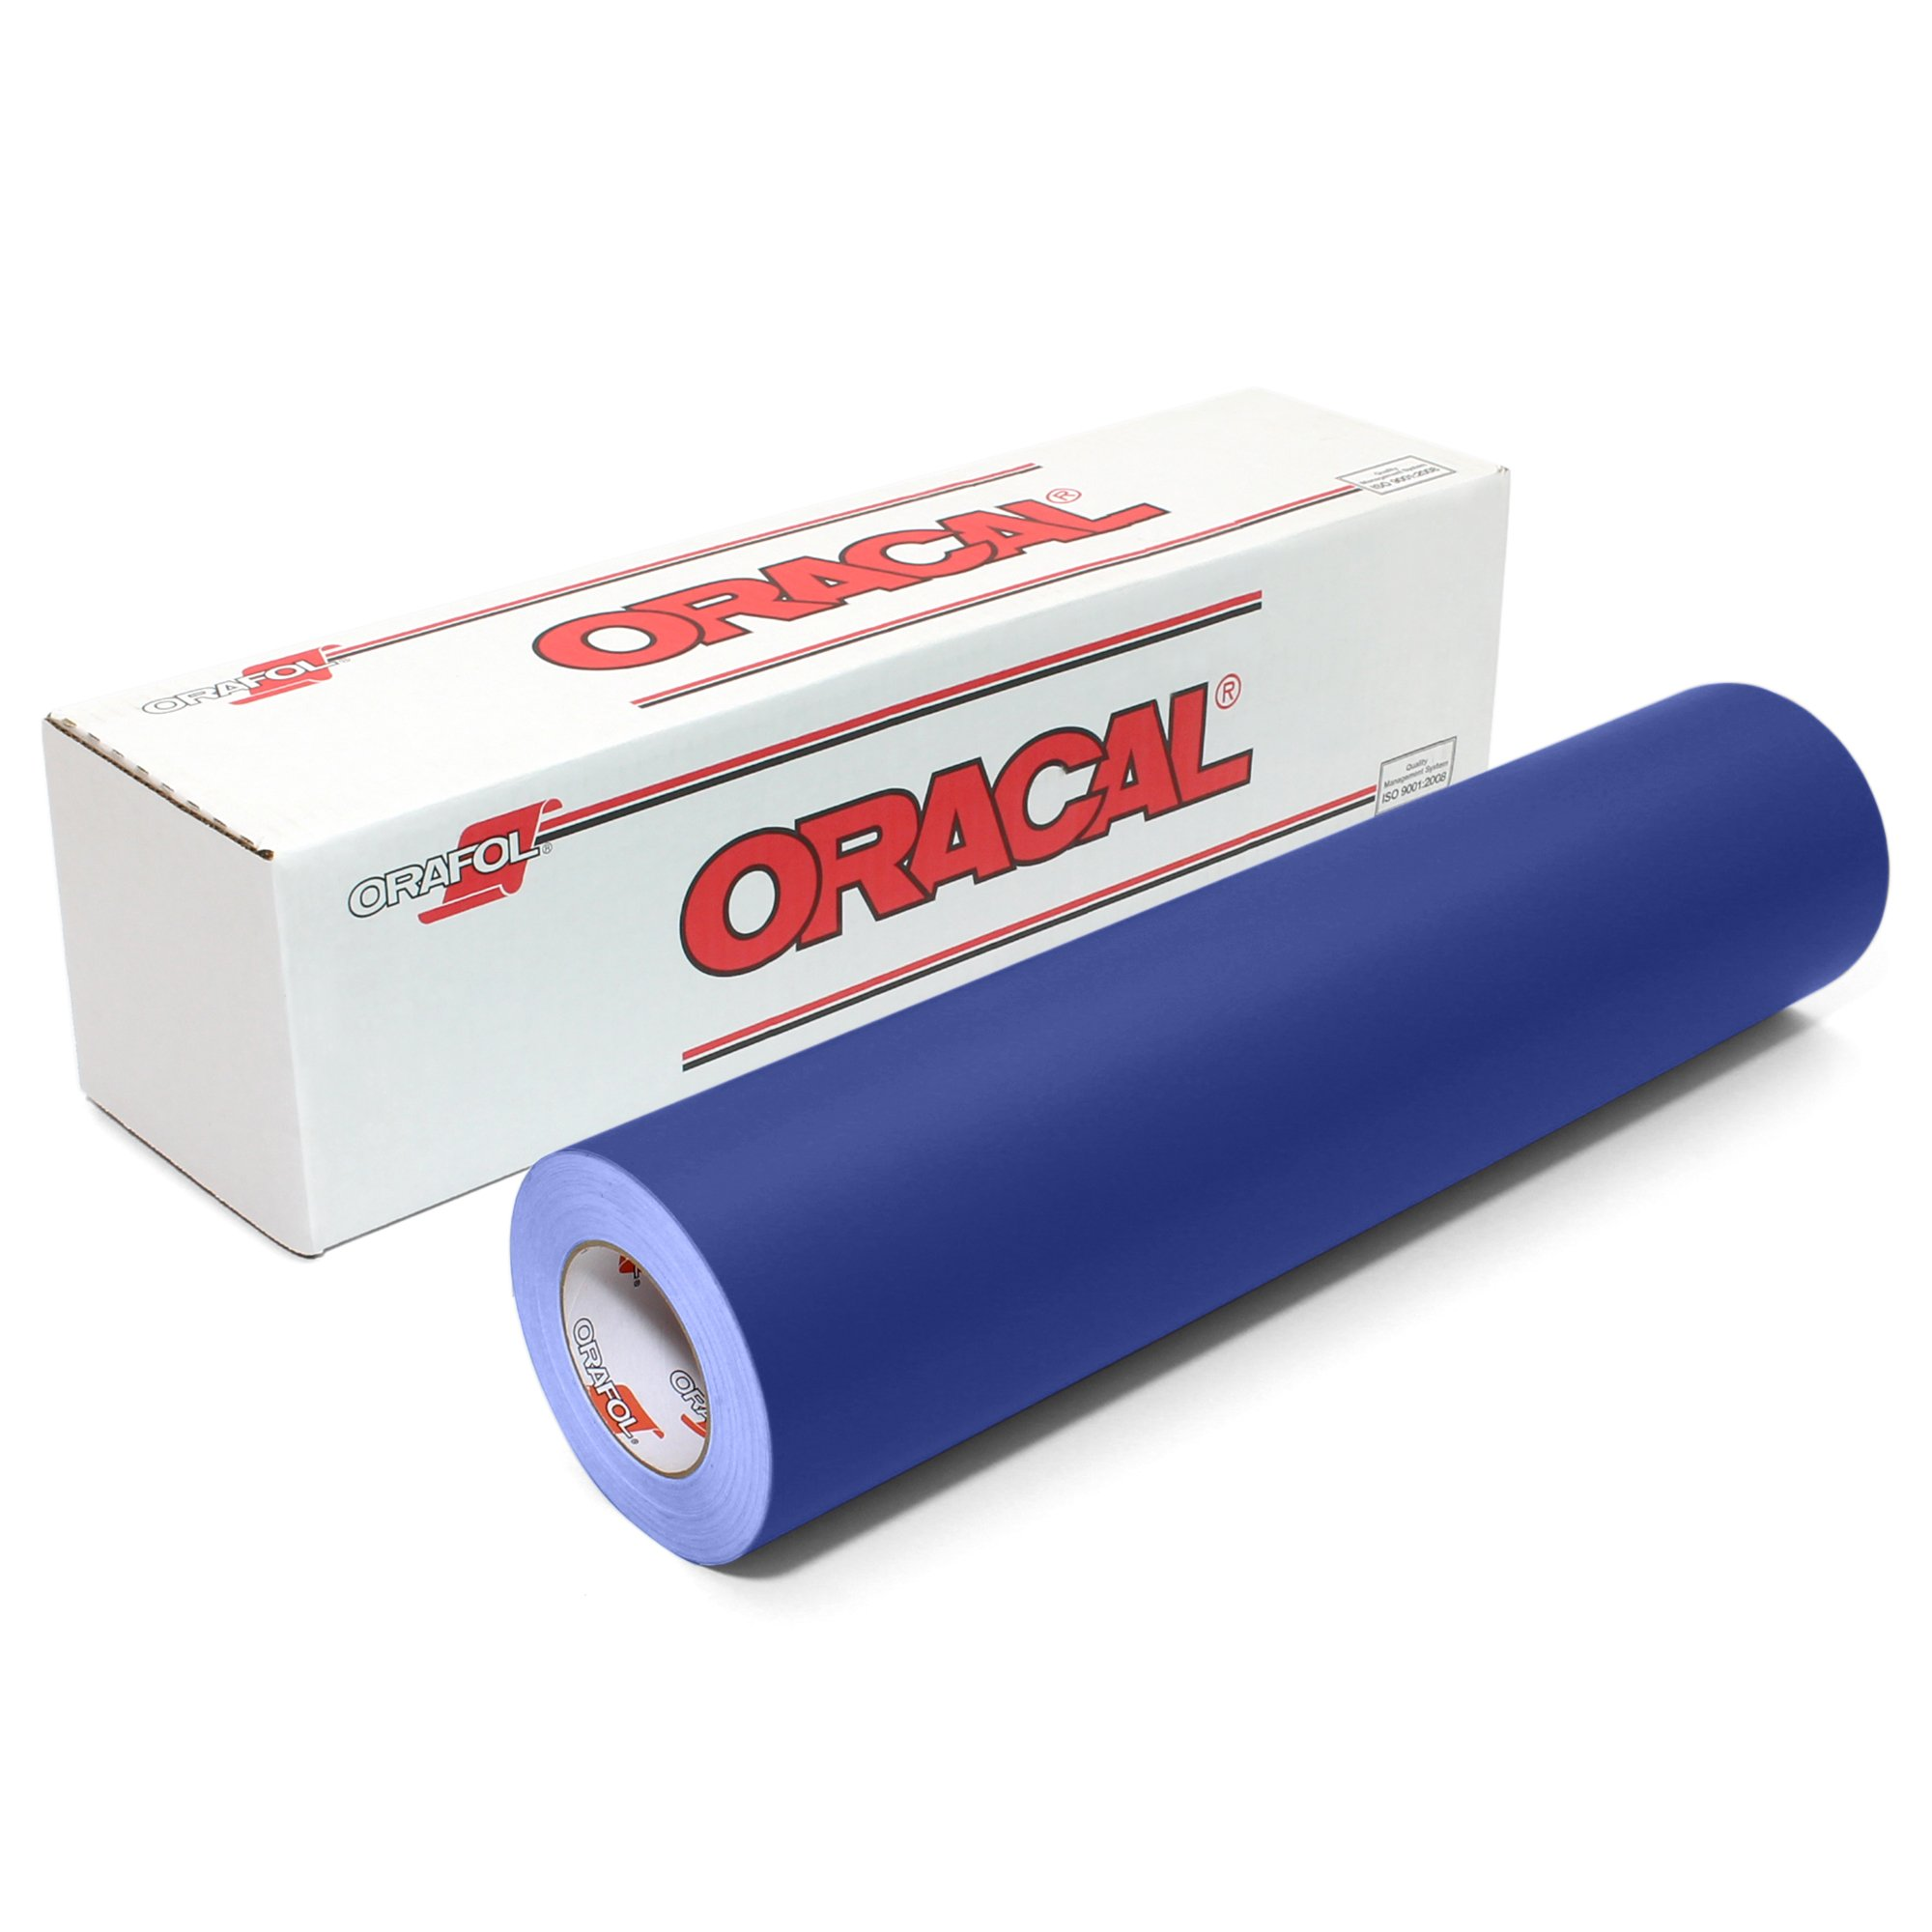 Oracal 631 Matte Vinyl Roll 2 Sizes Available - King Blue